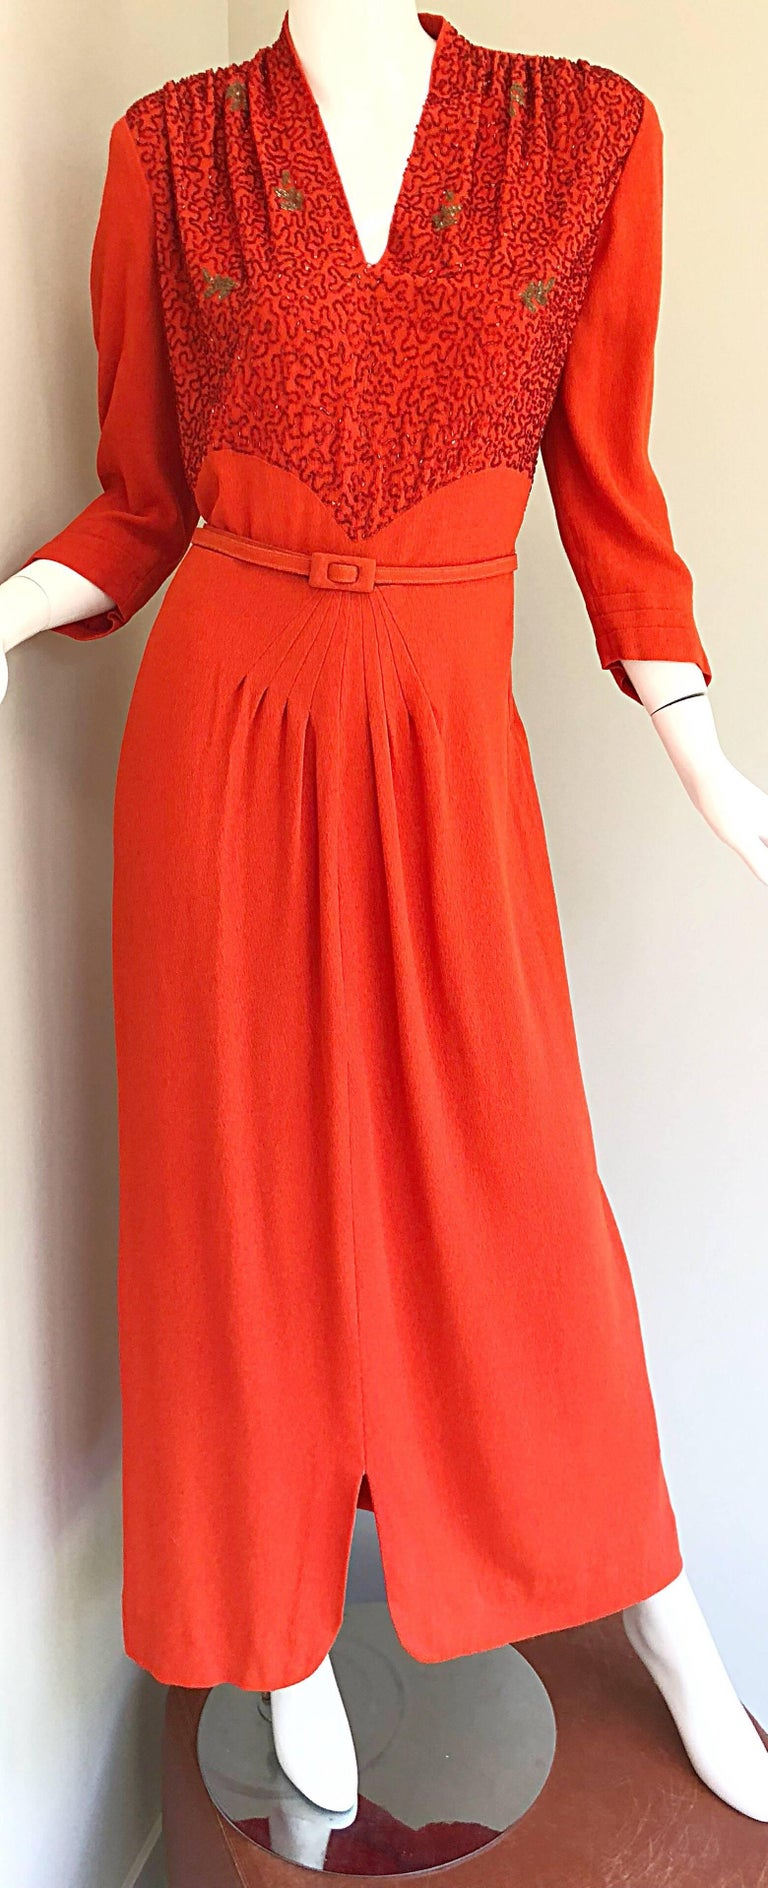 Beautifully perfected KORNHAUSER 1940s burnt orange crepe rayon beaded evening dress! Warm burnt orange color, with thousands of hand-sewn beads, sequins and rhinestones on the front bodice, which really flatters the stomach area. Full metal zipper